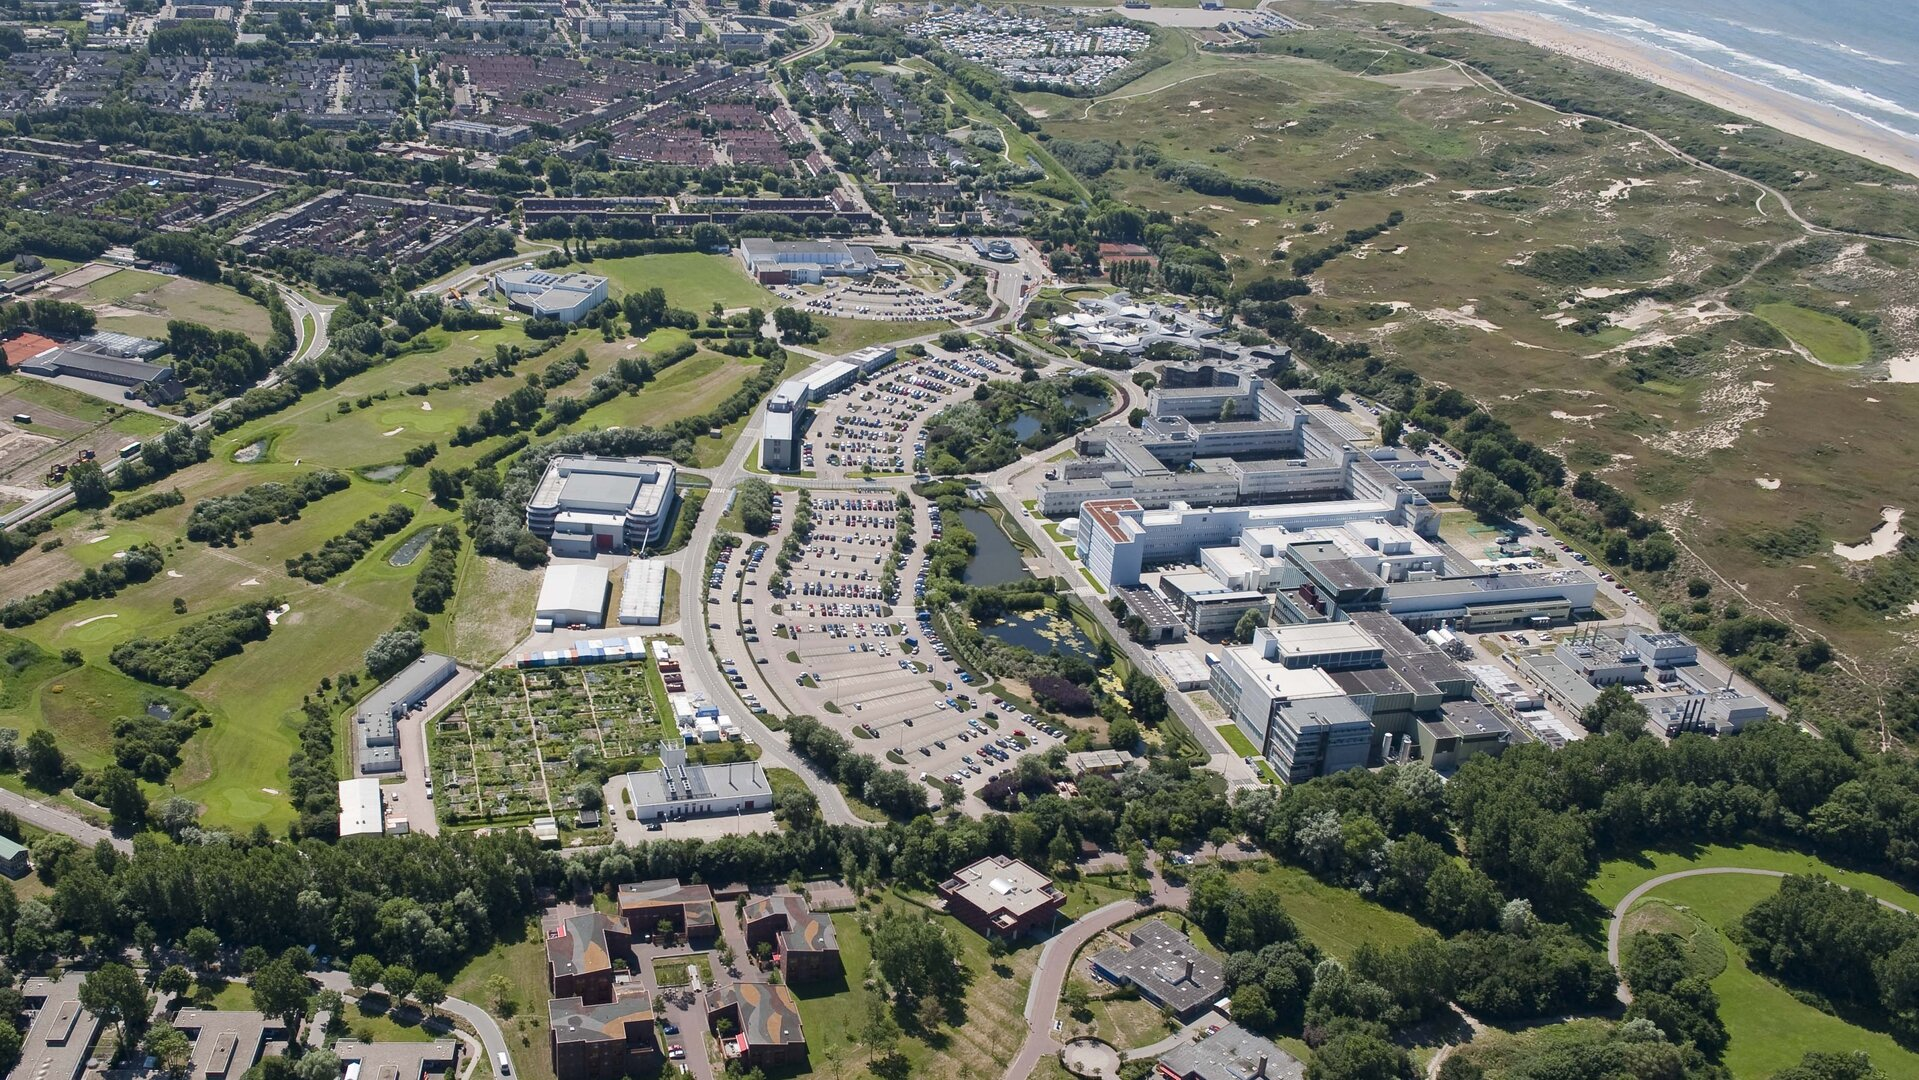 Aerial view of ESA's technical centre